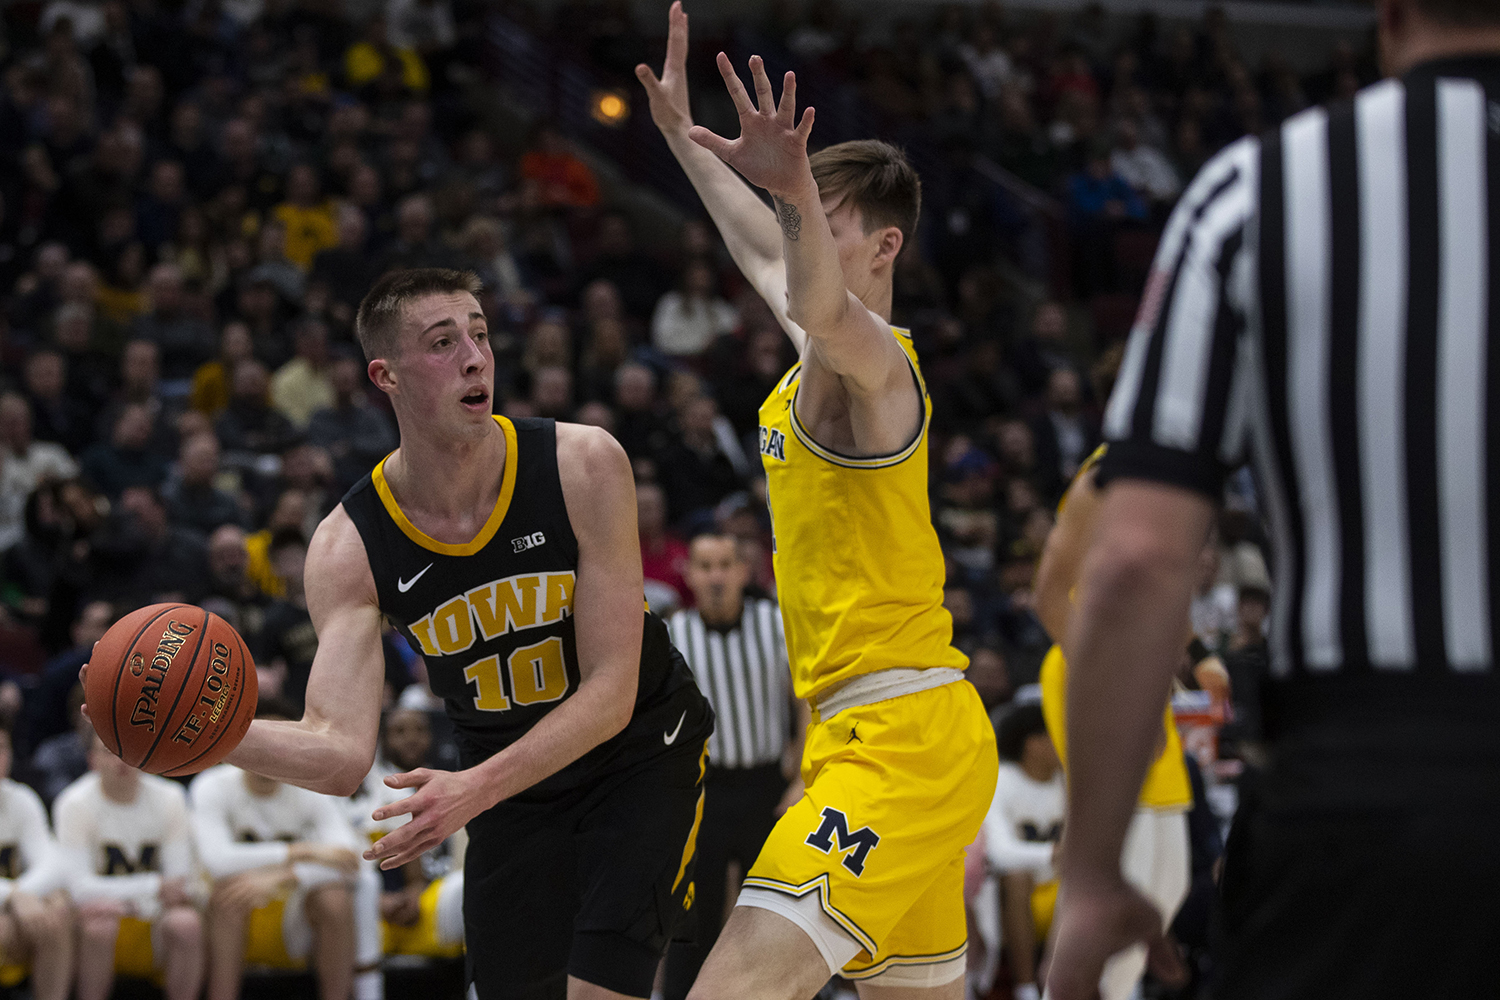 Iowa+guard+Joe+Wieskamp+looks+to+pass+the+ball+during+the+Iowa%2FMichigan+Big+Ten+Tournament+men%27s+basketball+game+in+the+United+Center+in+Chicago+on+Friday%2C+March+15%2C+2019.+The+Wolverines+defeated+the+Hawkeyes%2C+74-53.+